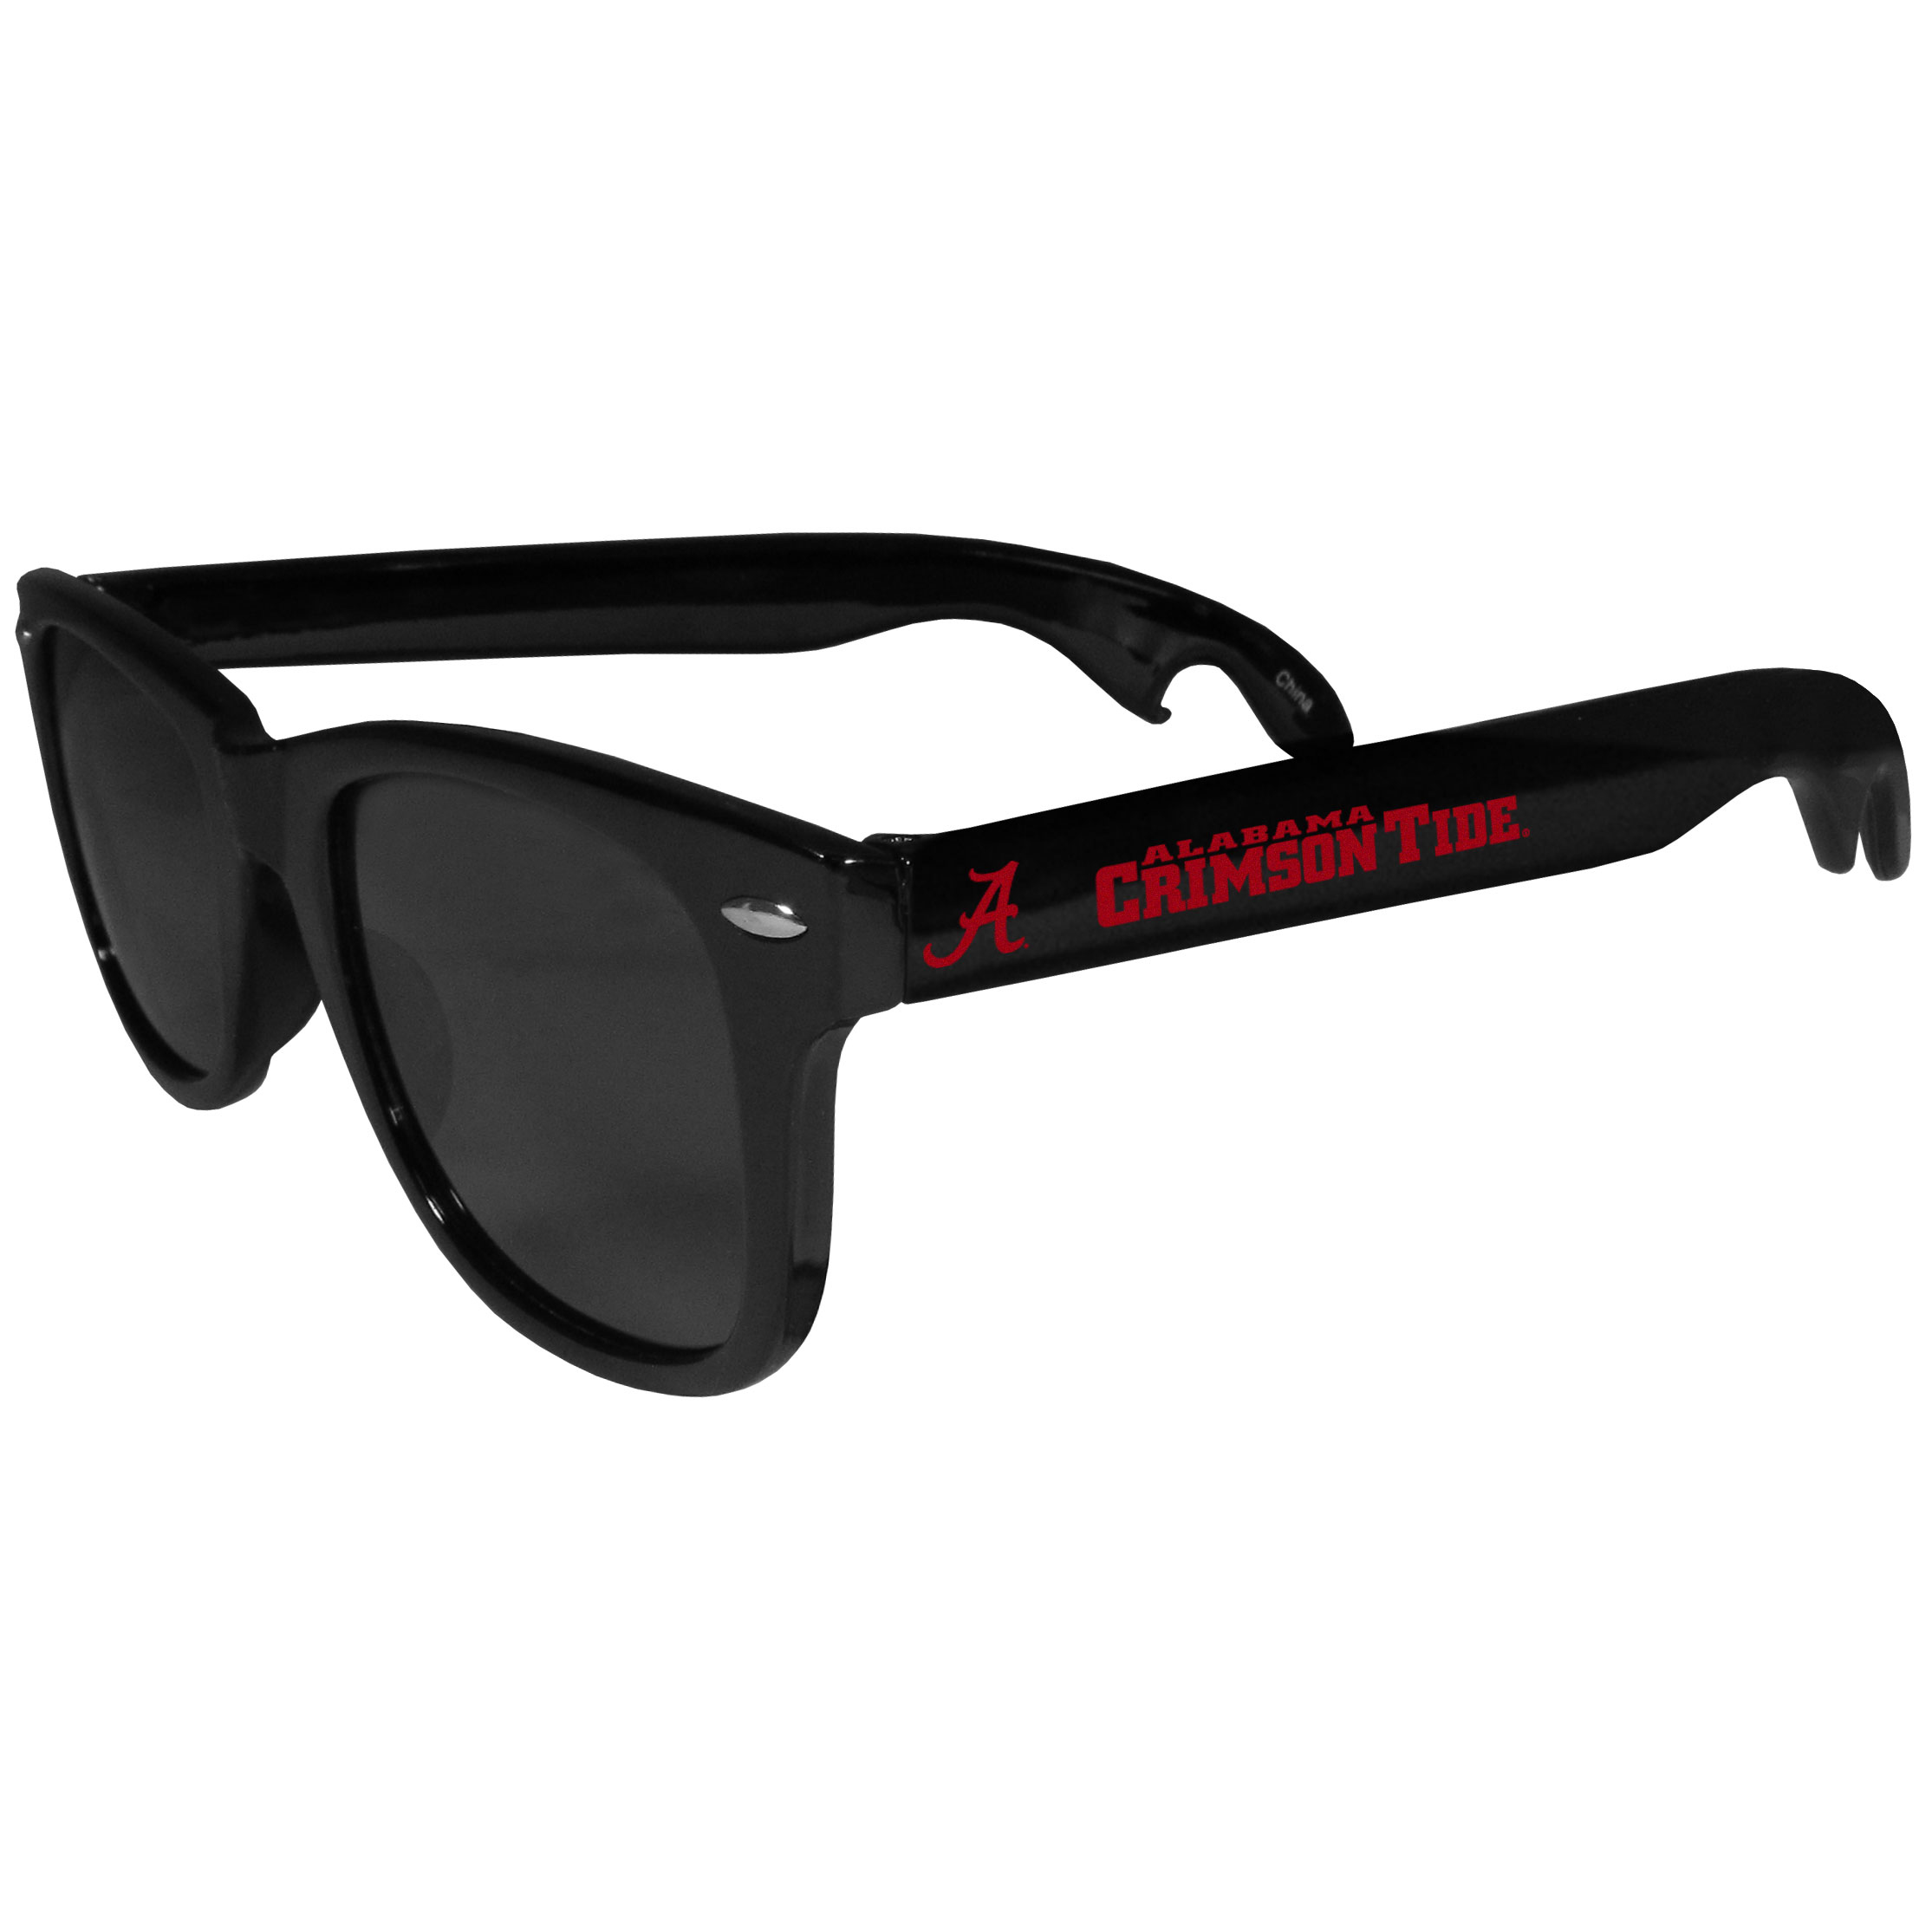 Alabama Crimson Tide Beachfarer Bottle Opener Sunglasses - Seriously, these sunglasses open bottles! Keep the party going with these amazing Alabama Crimson Tide bottle opener sunglasses. The stylish retro frames feature team designs on the arms and functional bottle openers on the end of the arms. Whether you are at the beach or having a backyard BBQ on game day, these shades will keep your eyes protected with 100% UVA/UVB protection and keep you hydrated with the handy bottle opener arms.